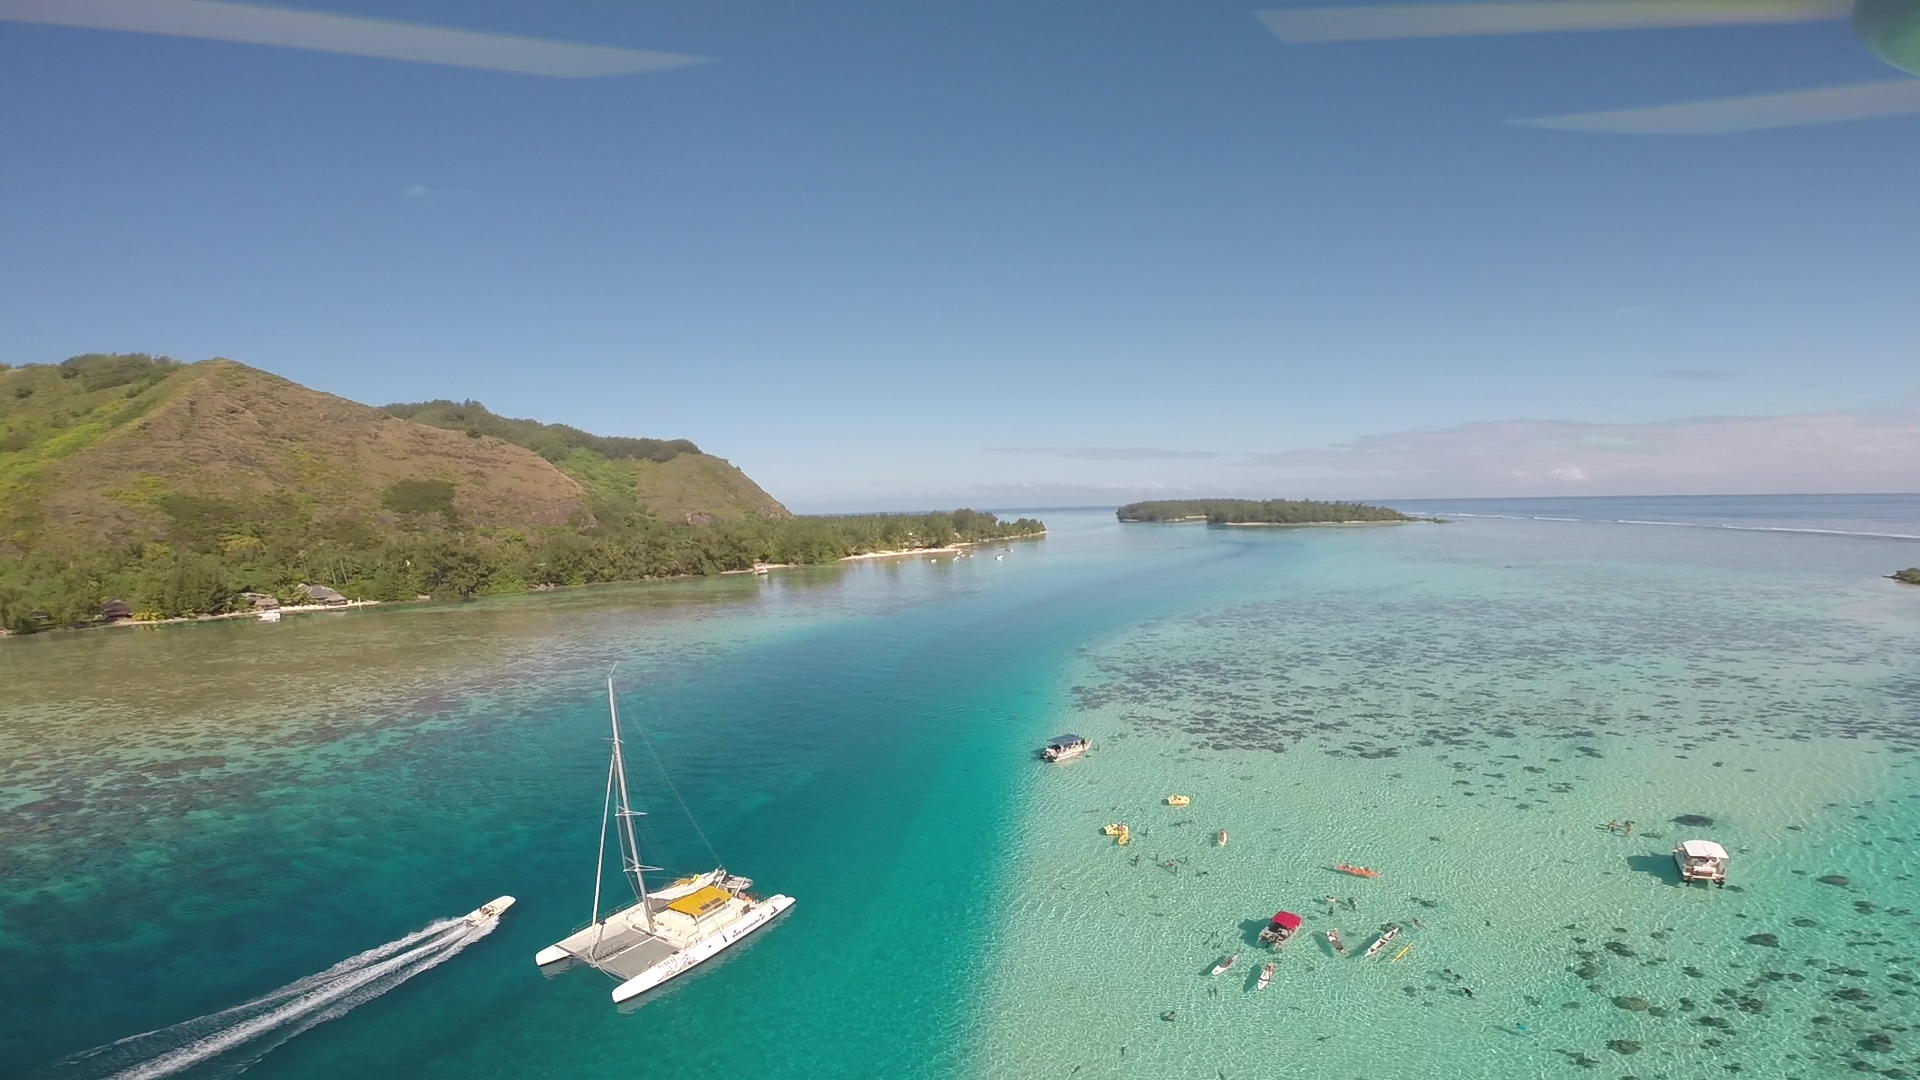 An aerial view of Moorea's lagoon taken by the drone.